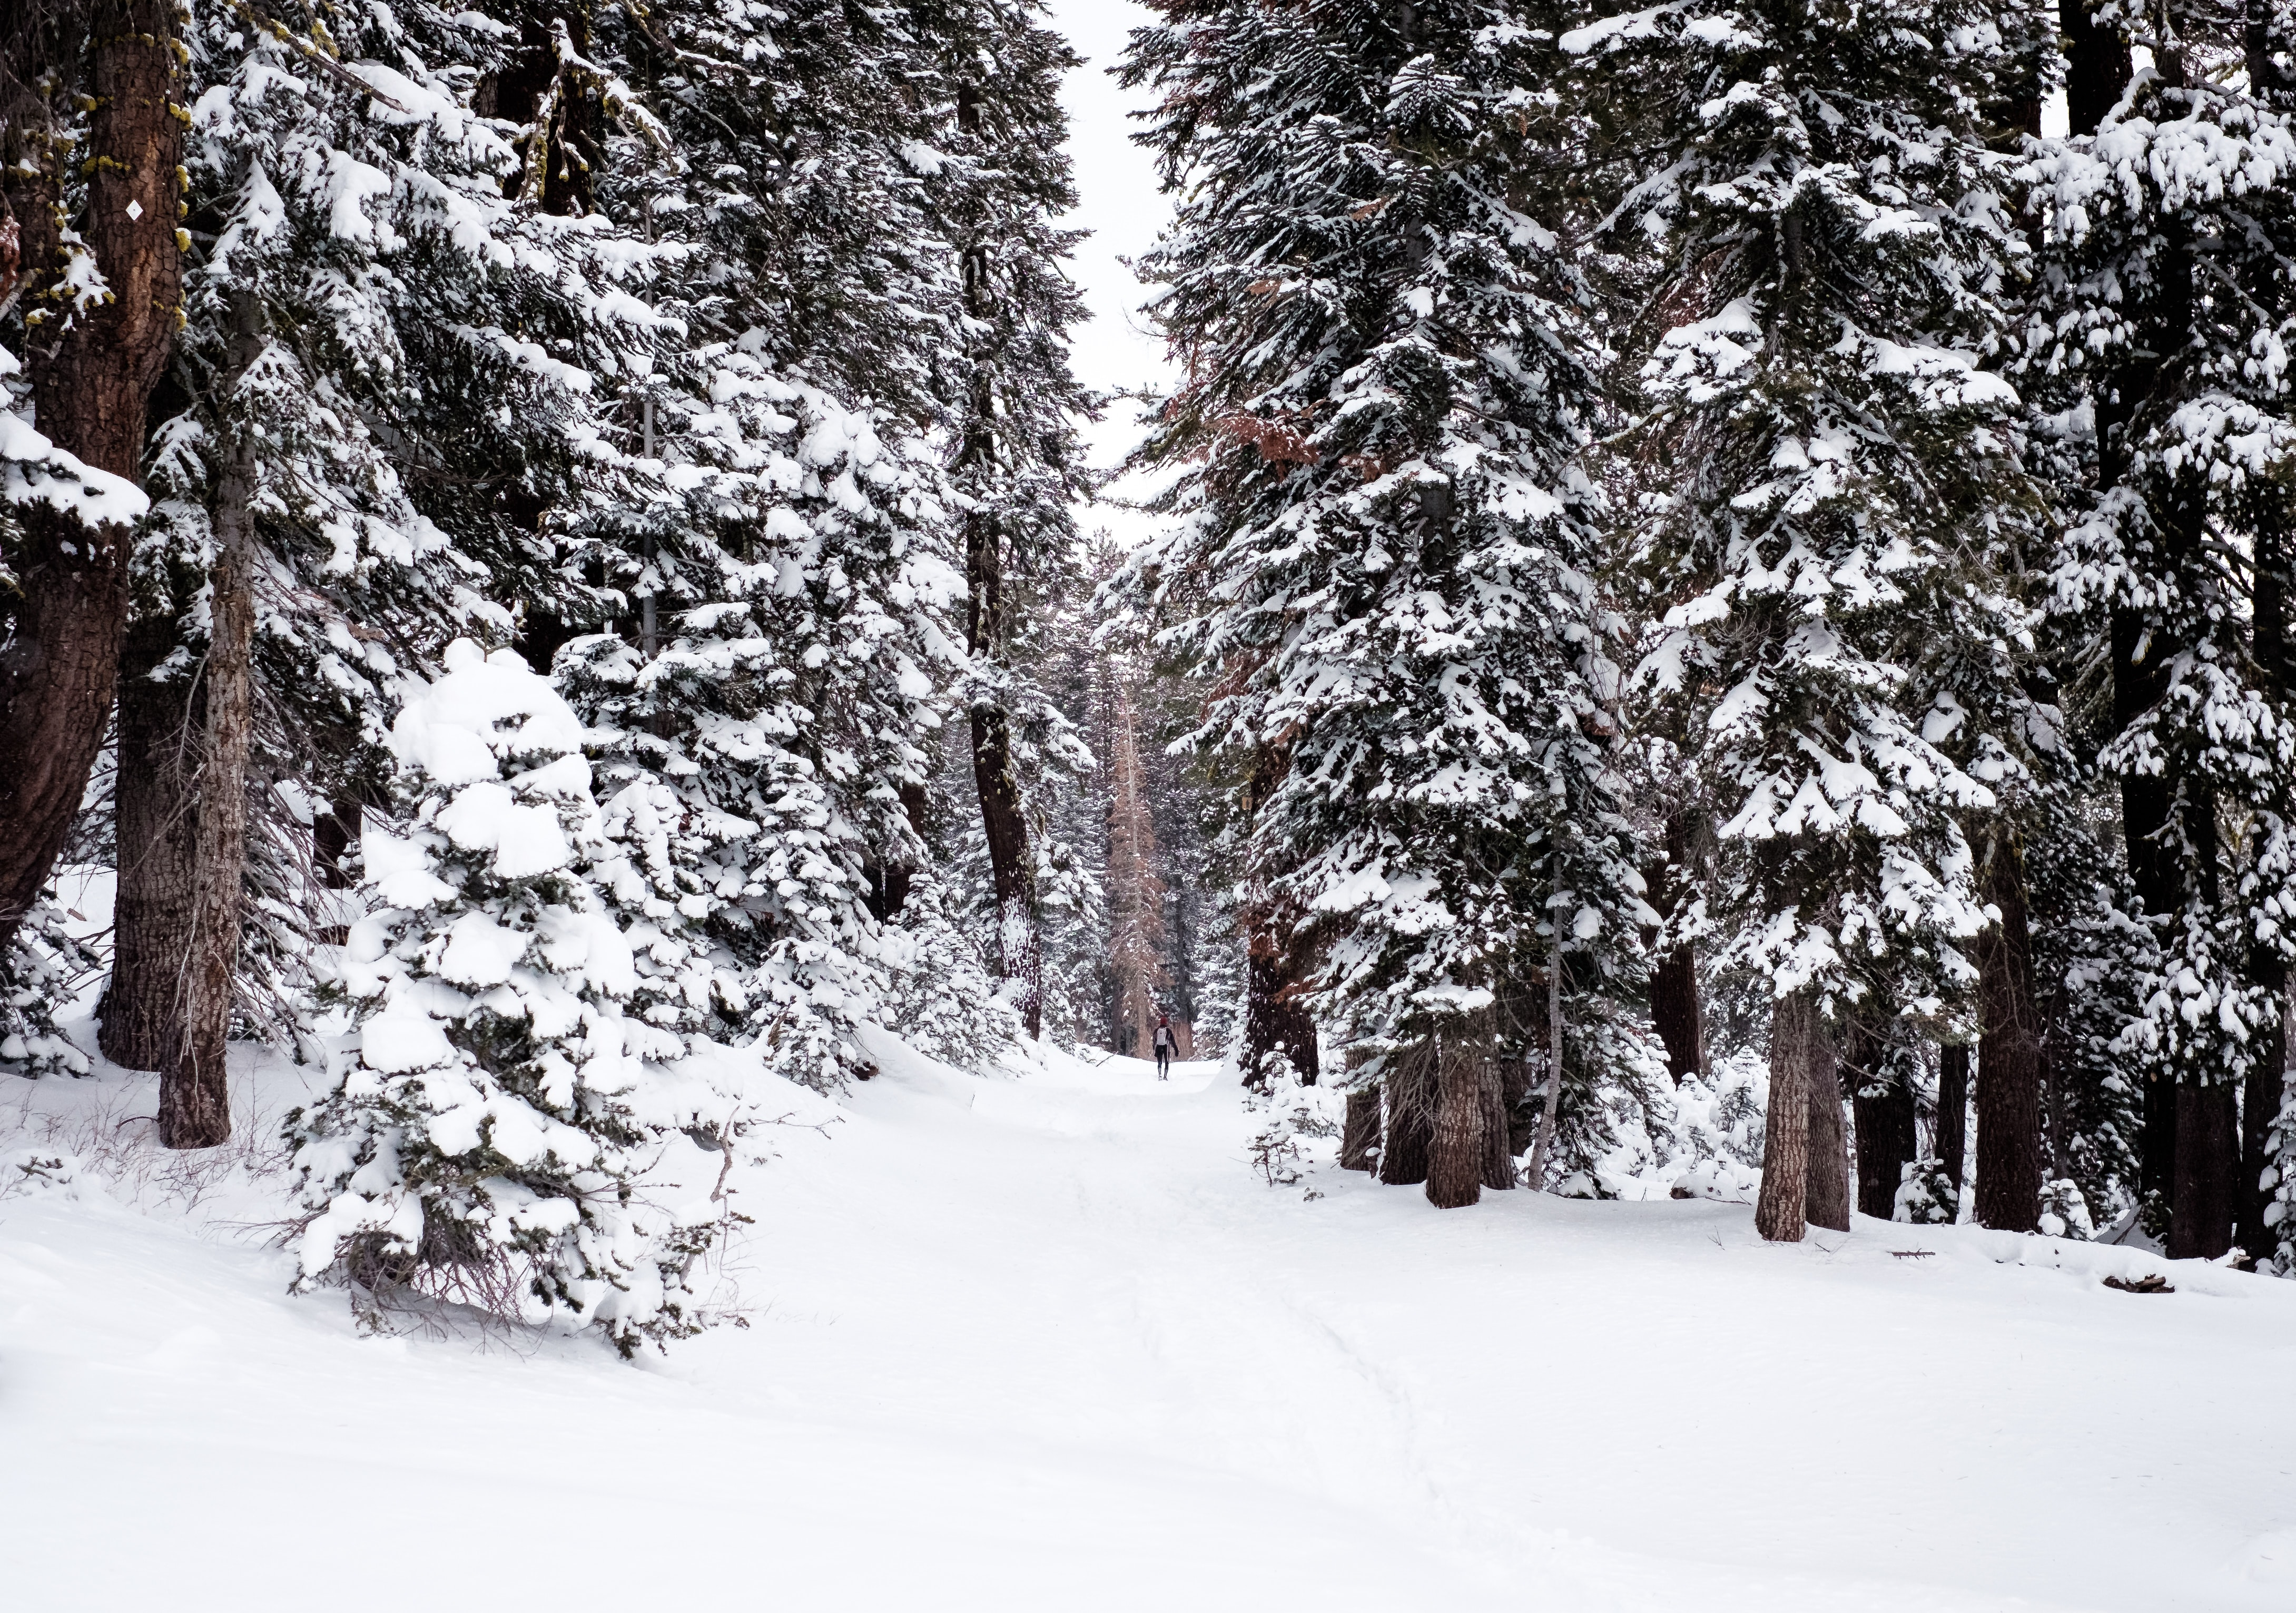 Heavily covered roads and trees in the winter at Lake Tahoe